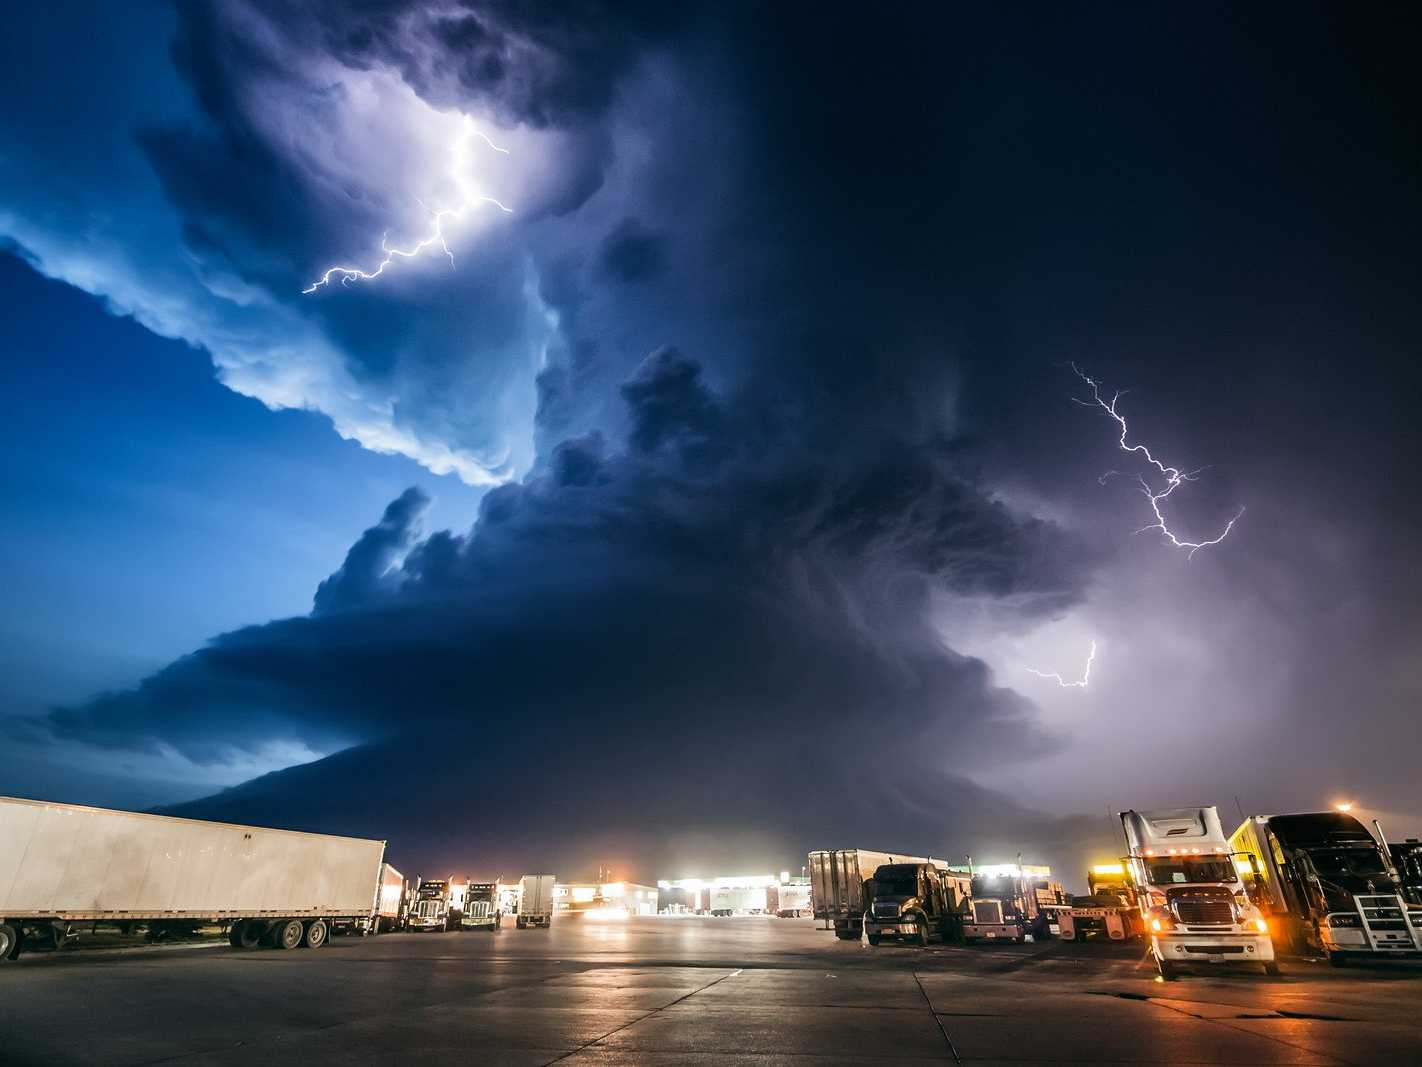 storm-chaser-chasing | weatherstationary.com